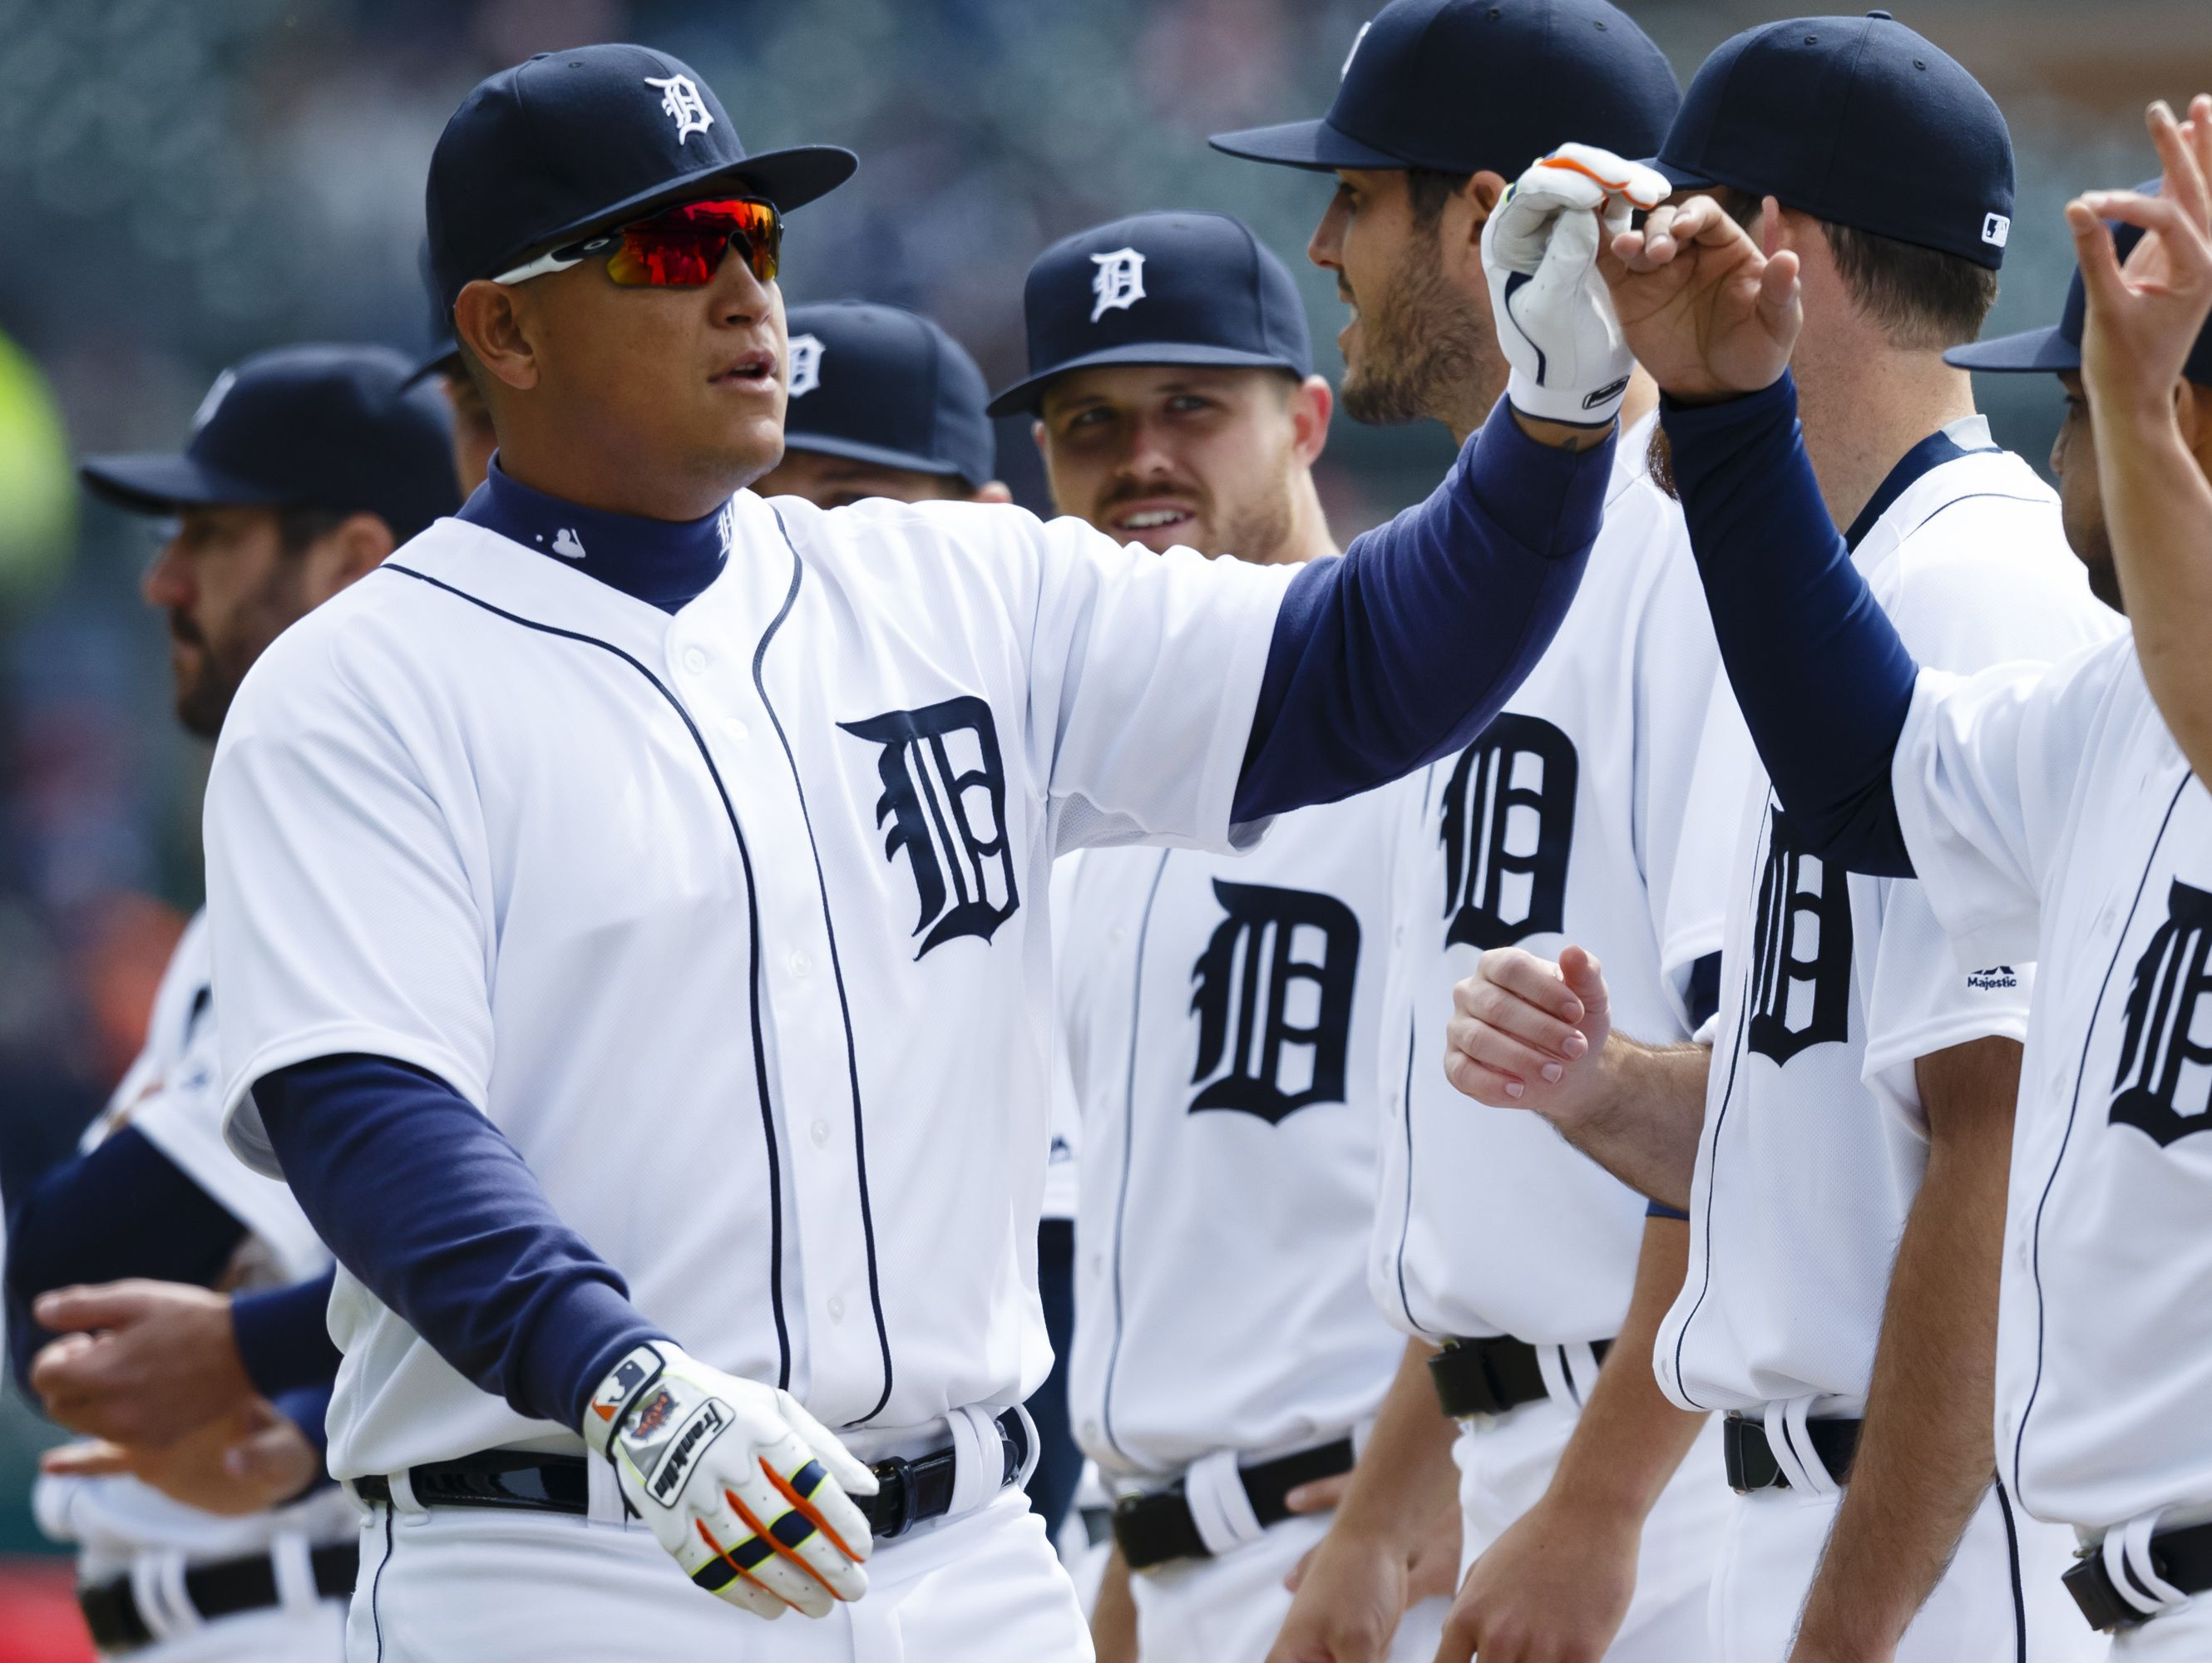 Apr 8, 2016; Detroit, MI, USA; Detroit Tigers first baseman Miguel Cabrera (24) is introduced before the game on Opening Day against the New York Yankees at Comerica Park. Mandatory Credit: Rick Osentoski-USA TODAY Sports